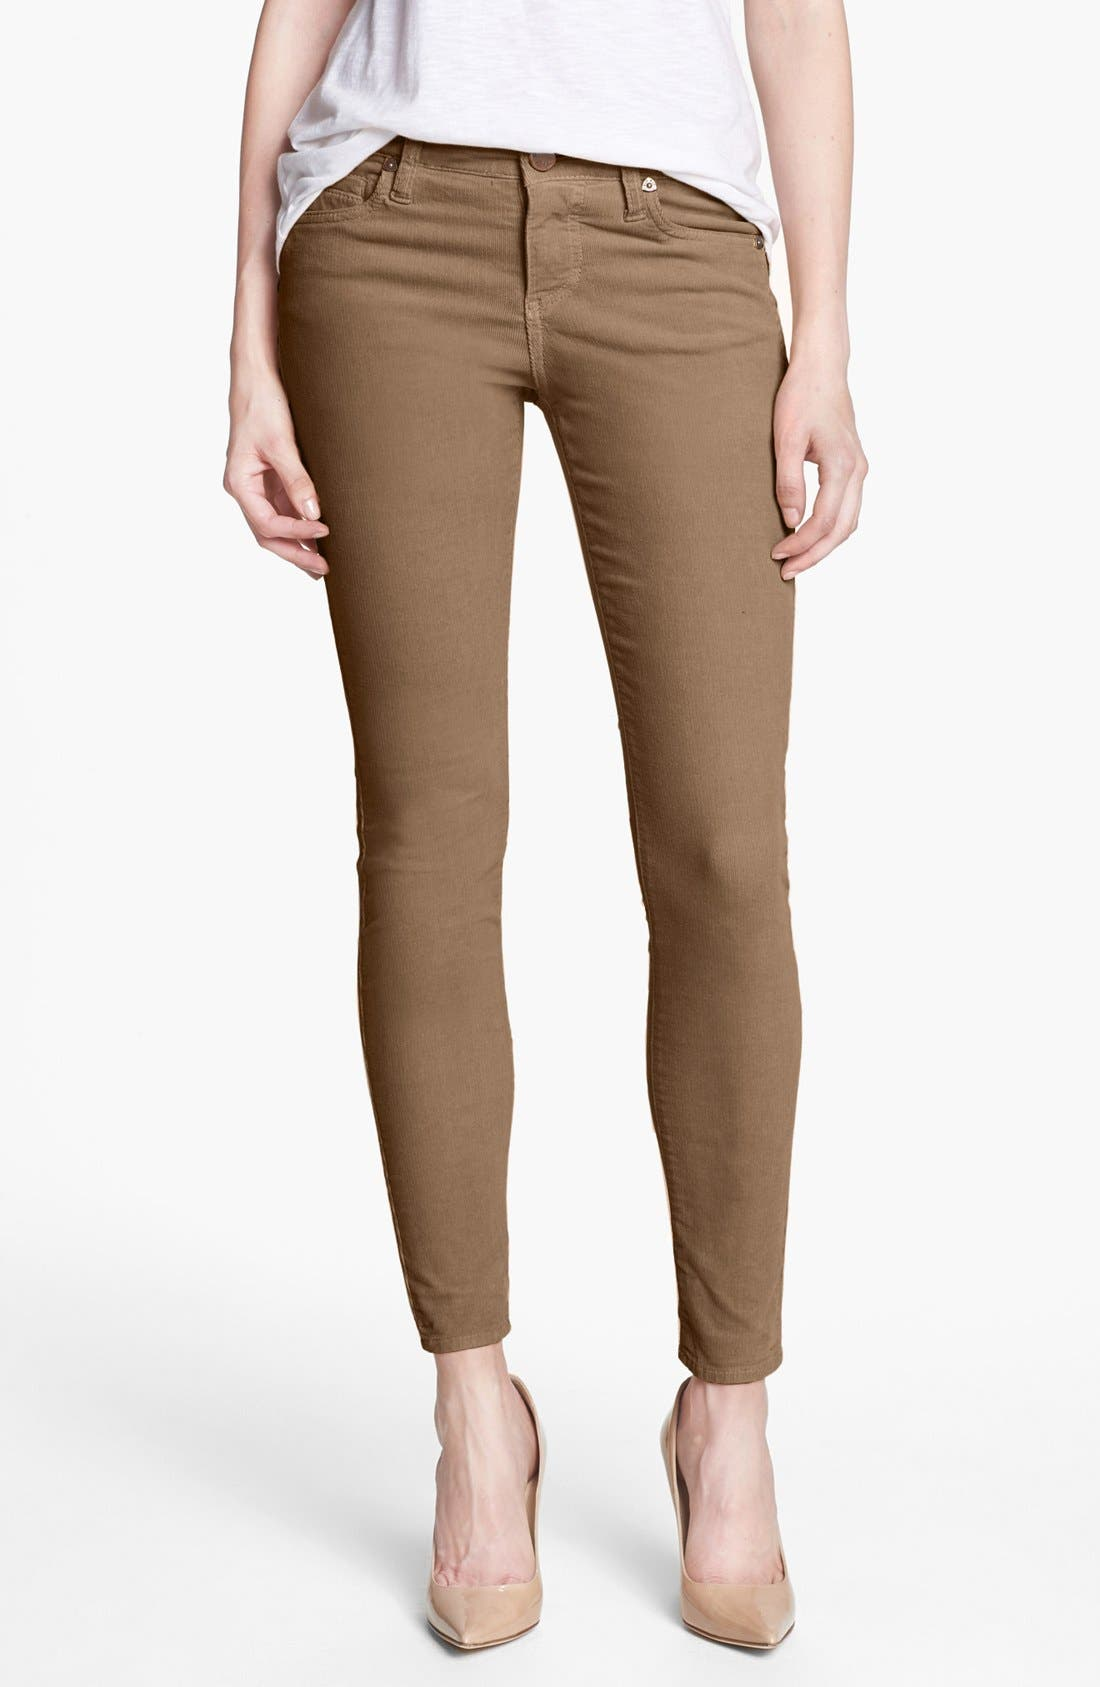 Alternate Image 1 Selected - KUT from the Kloth 'Mia' Corduroy Pants